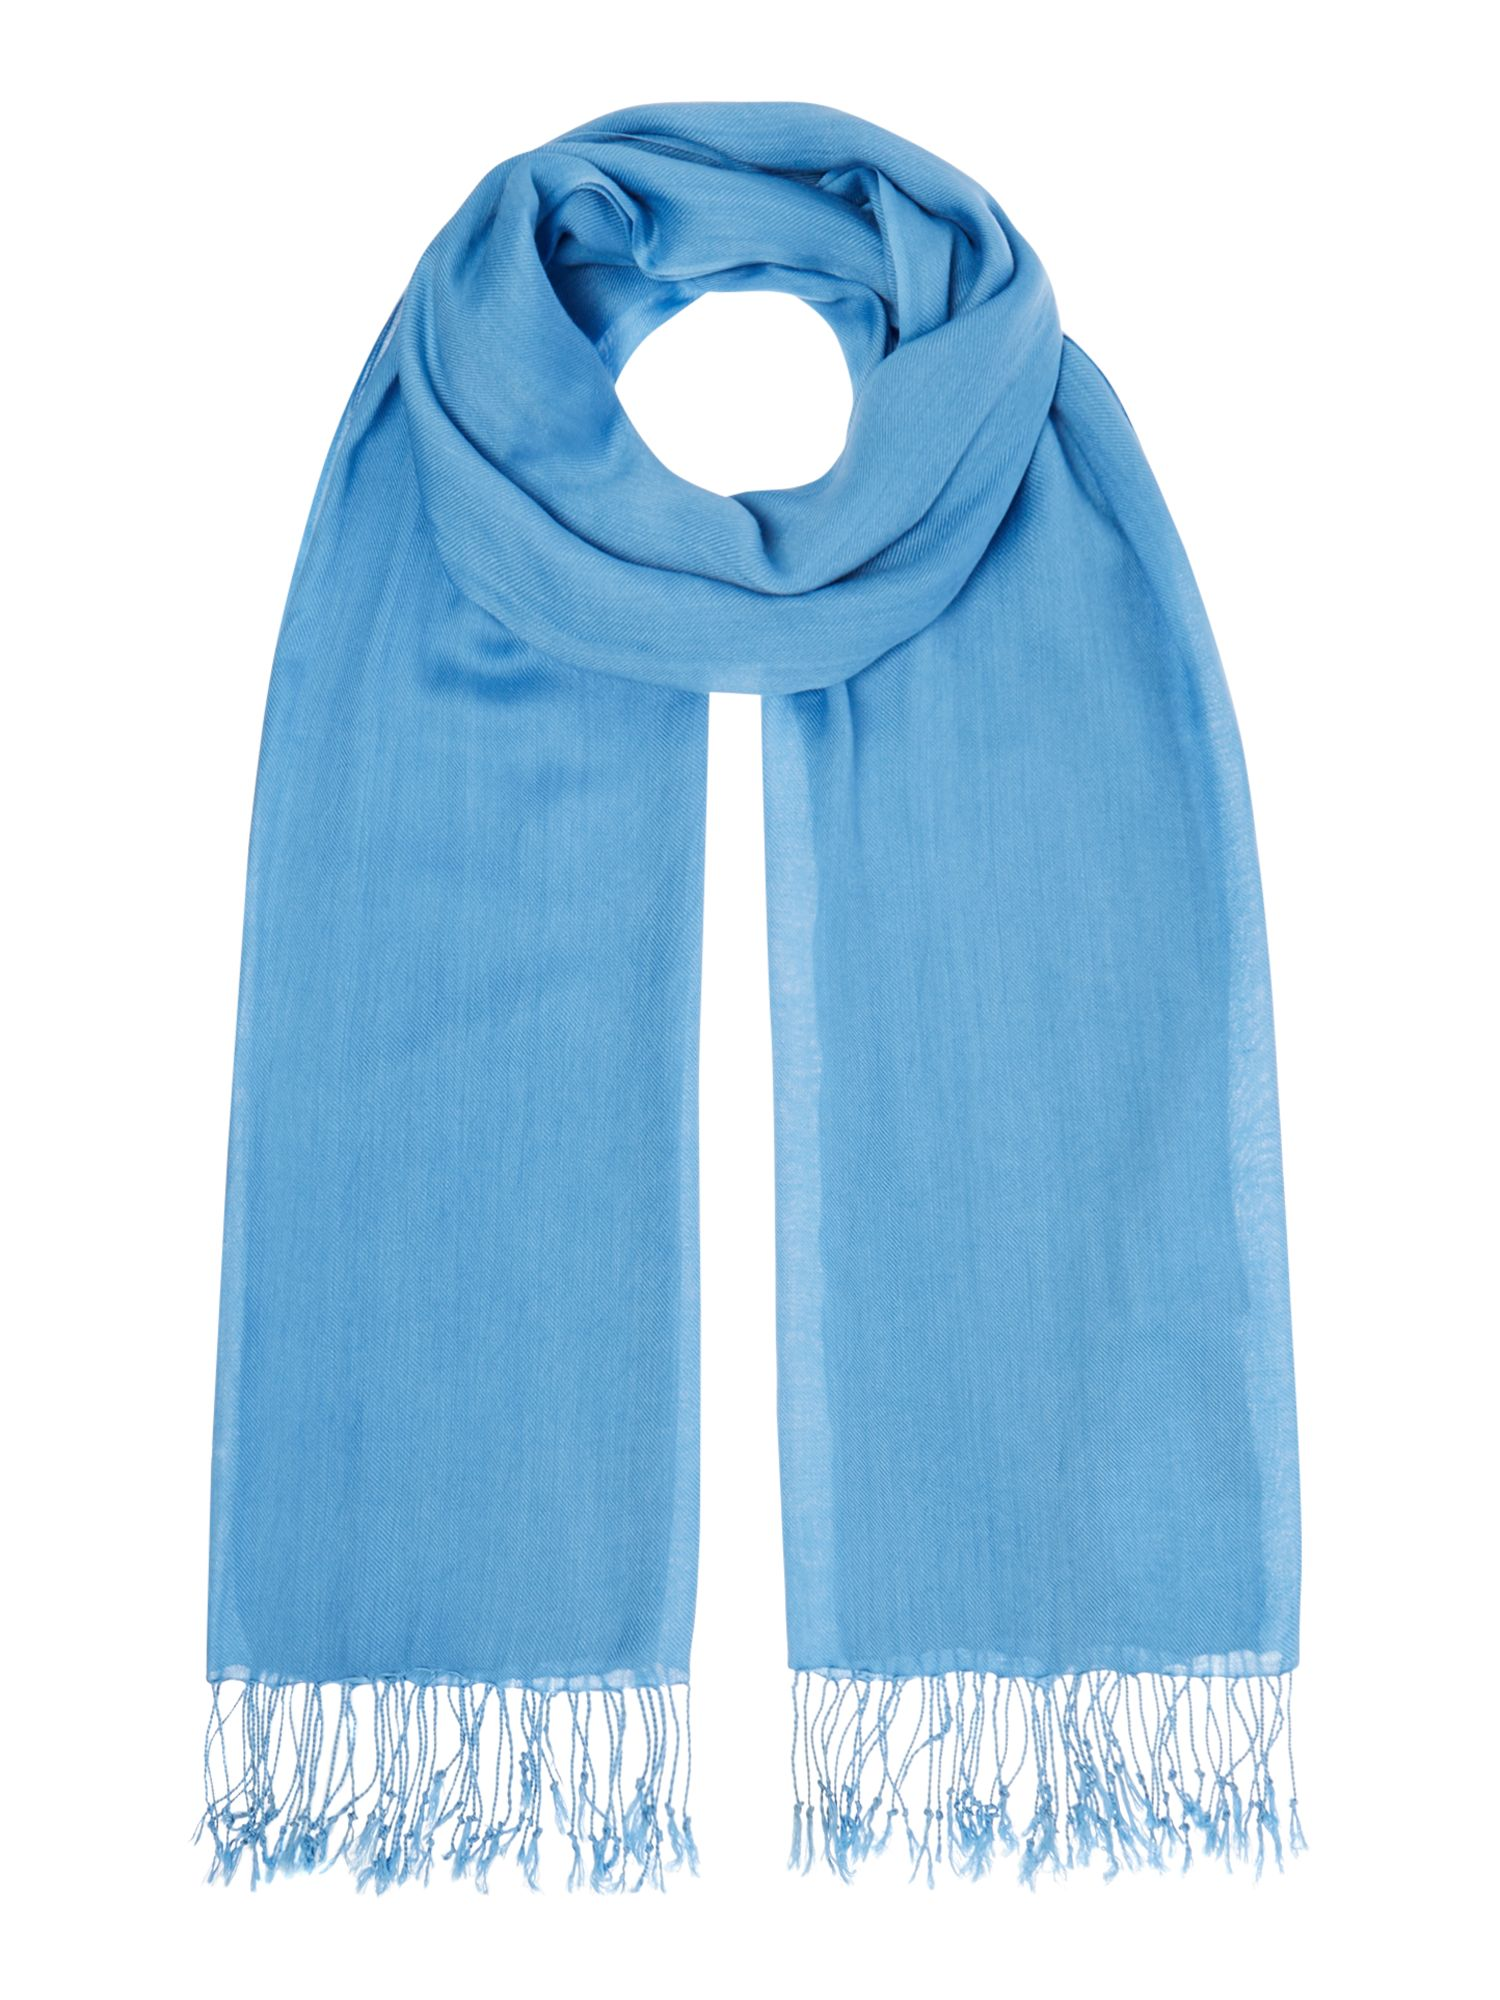 Suzanne Bettley Large shawl, Blue